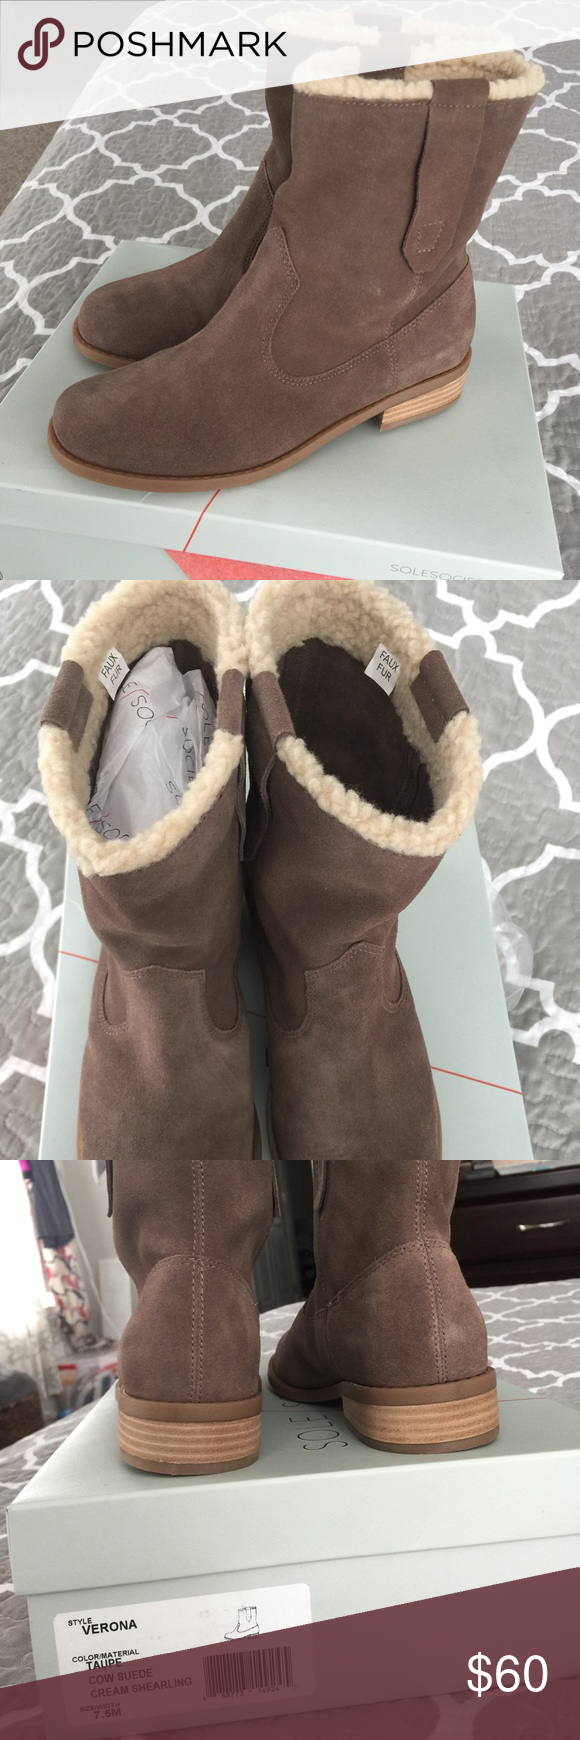 NWT Sole Society Taupe Shearling ankle boots New in box, ordered them and realized the color was very similar to a pair I already have : Shearling detail around top Sole Society Shoes Ankle Boots & Booties